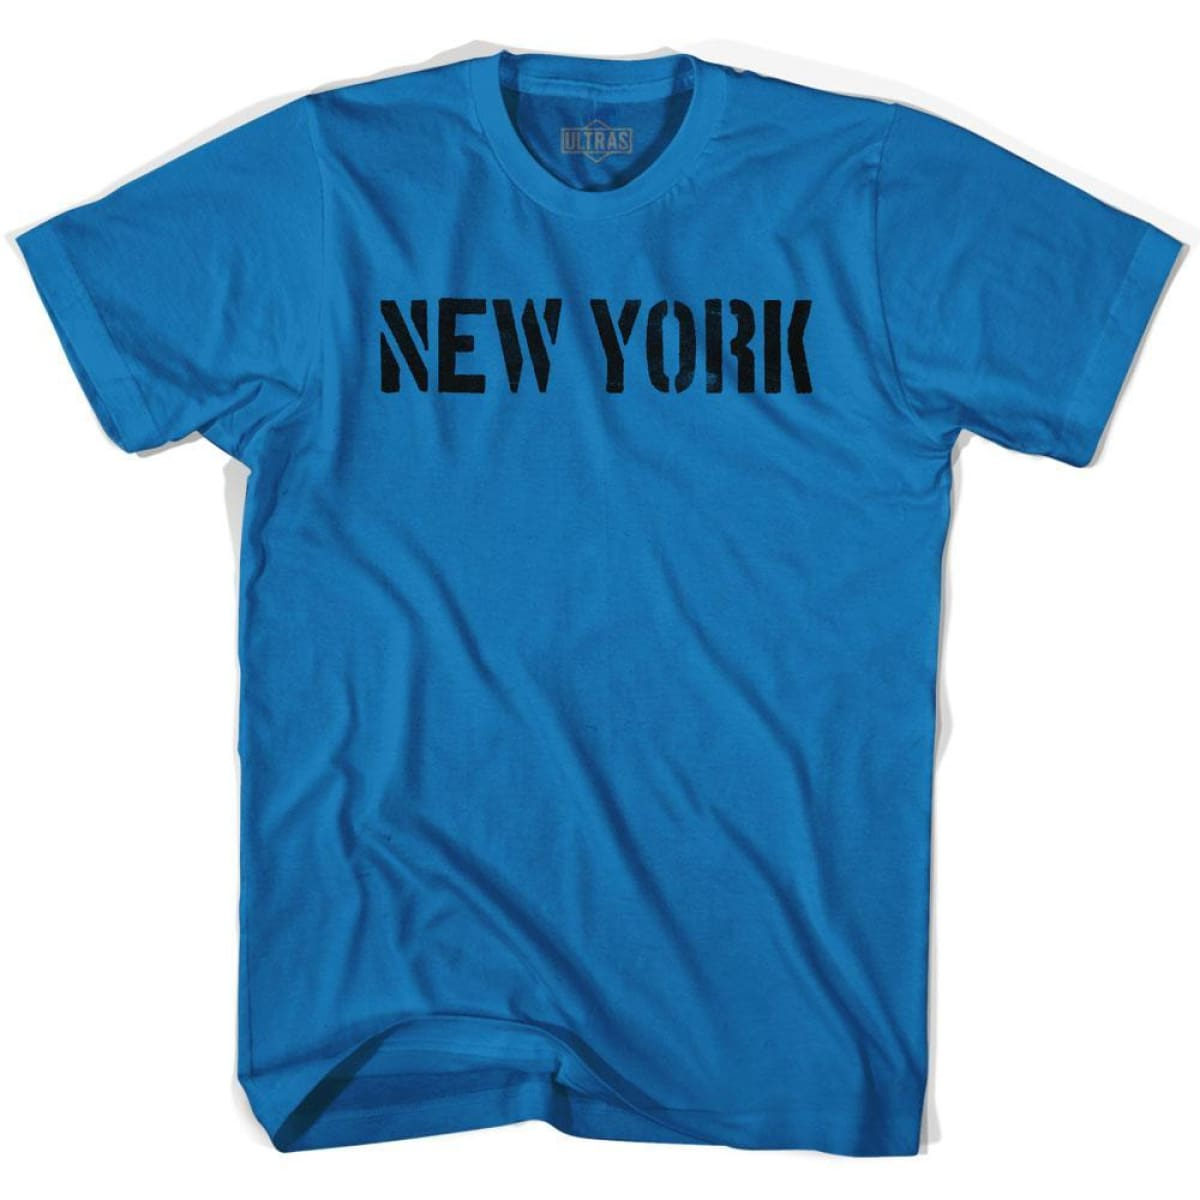 New York State Stencil Adult Cotton T-shirt - Royal / Adult Small - Stencil State